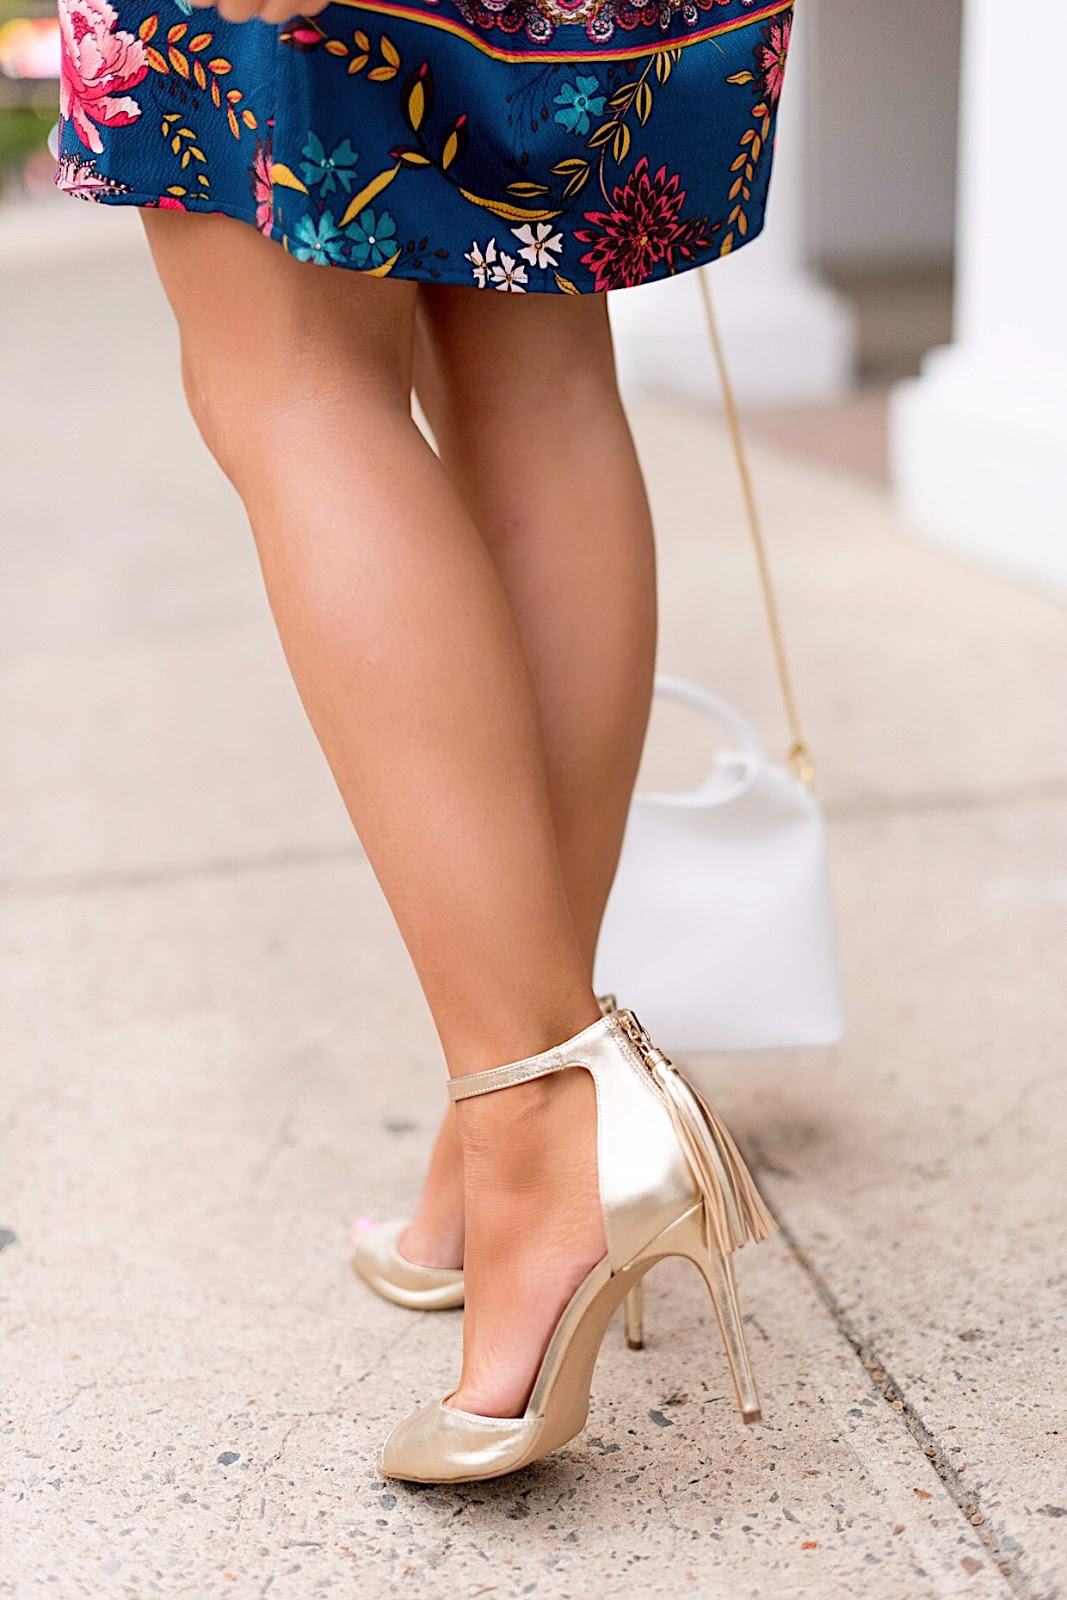 Botkier Tassel Sandals - Click through to see more on Something Delightful Blog